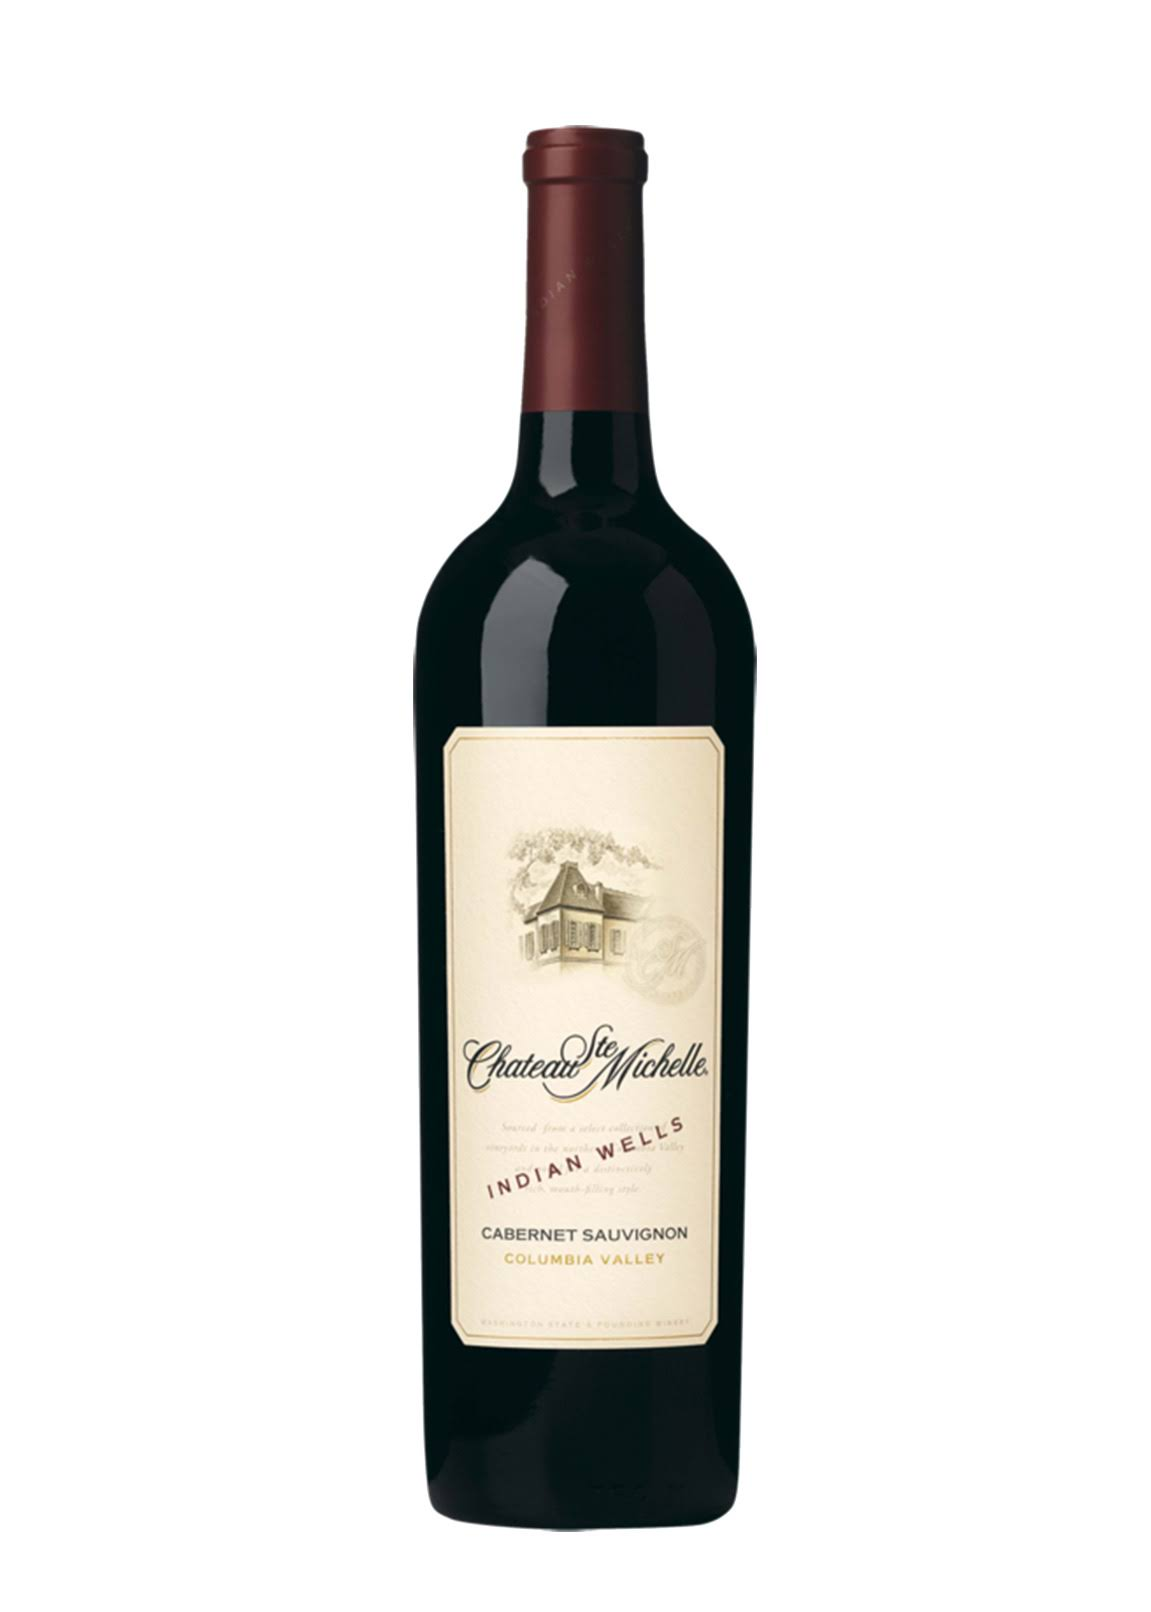 Chateau Ste. Michelle Indian Wells Cabernet Sauvignon - 750ml